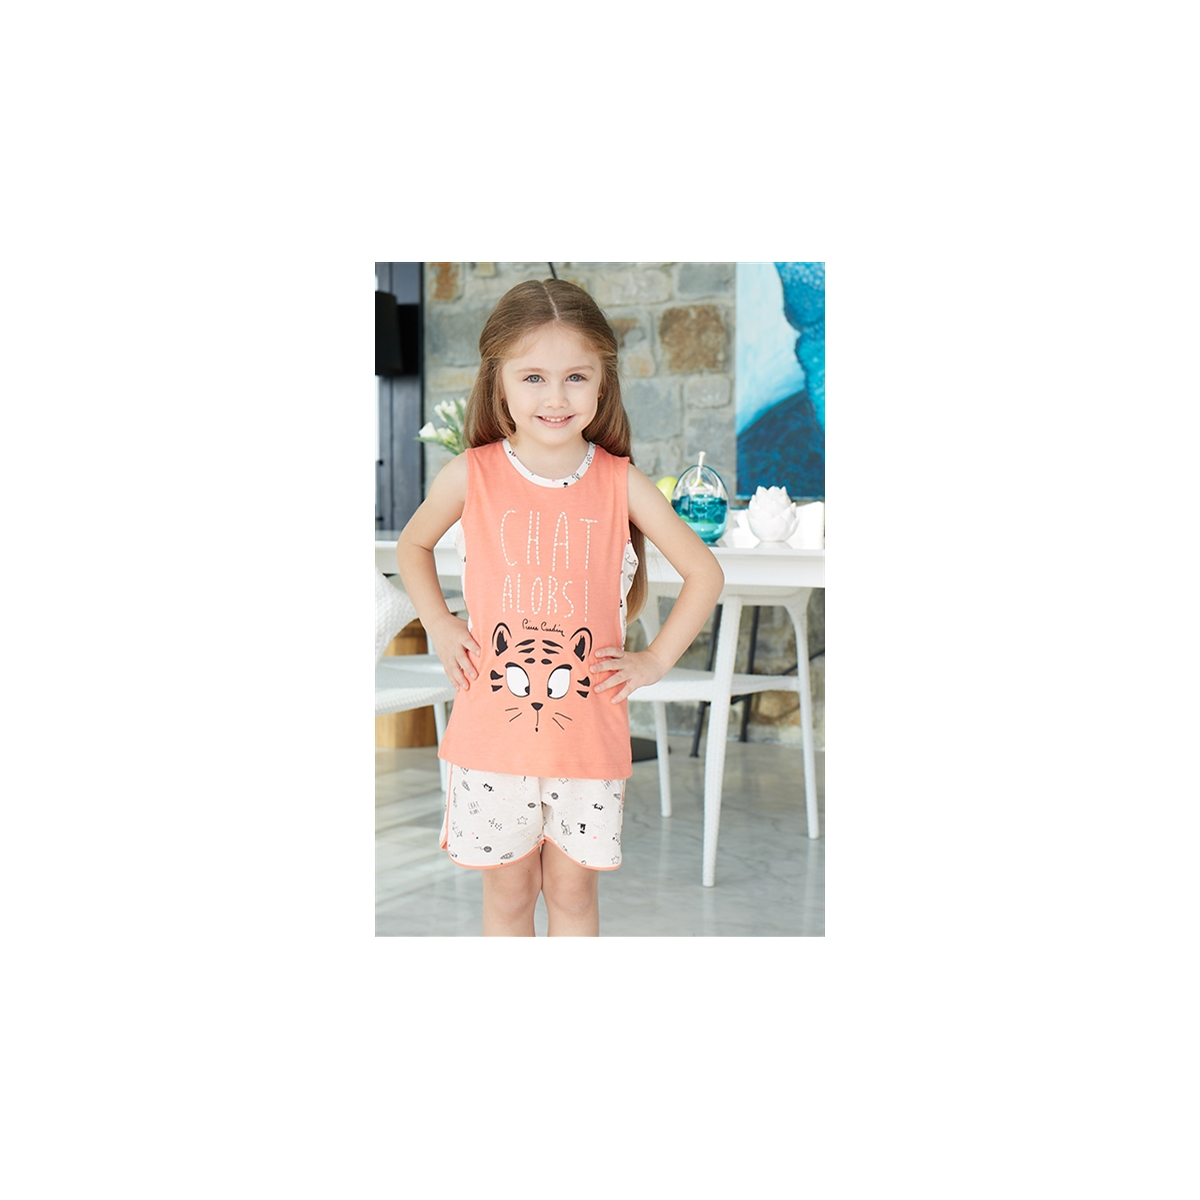 Pierre Cardin Young Girl Shorts Light Tan Suit Licensed